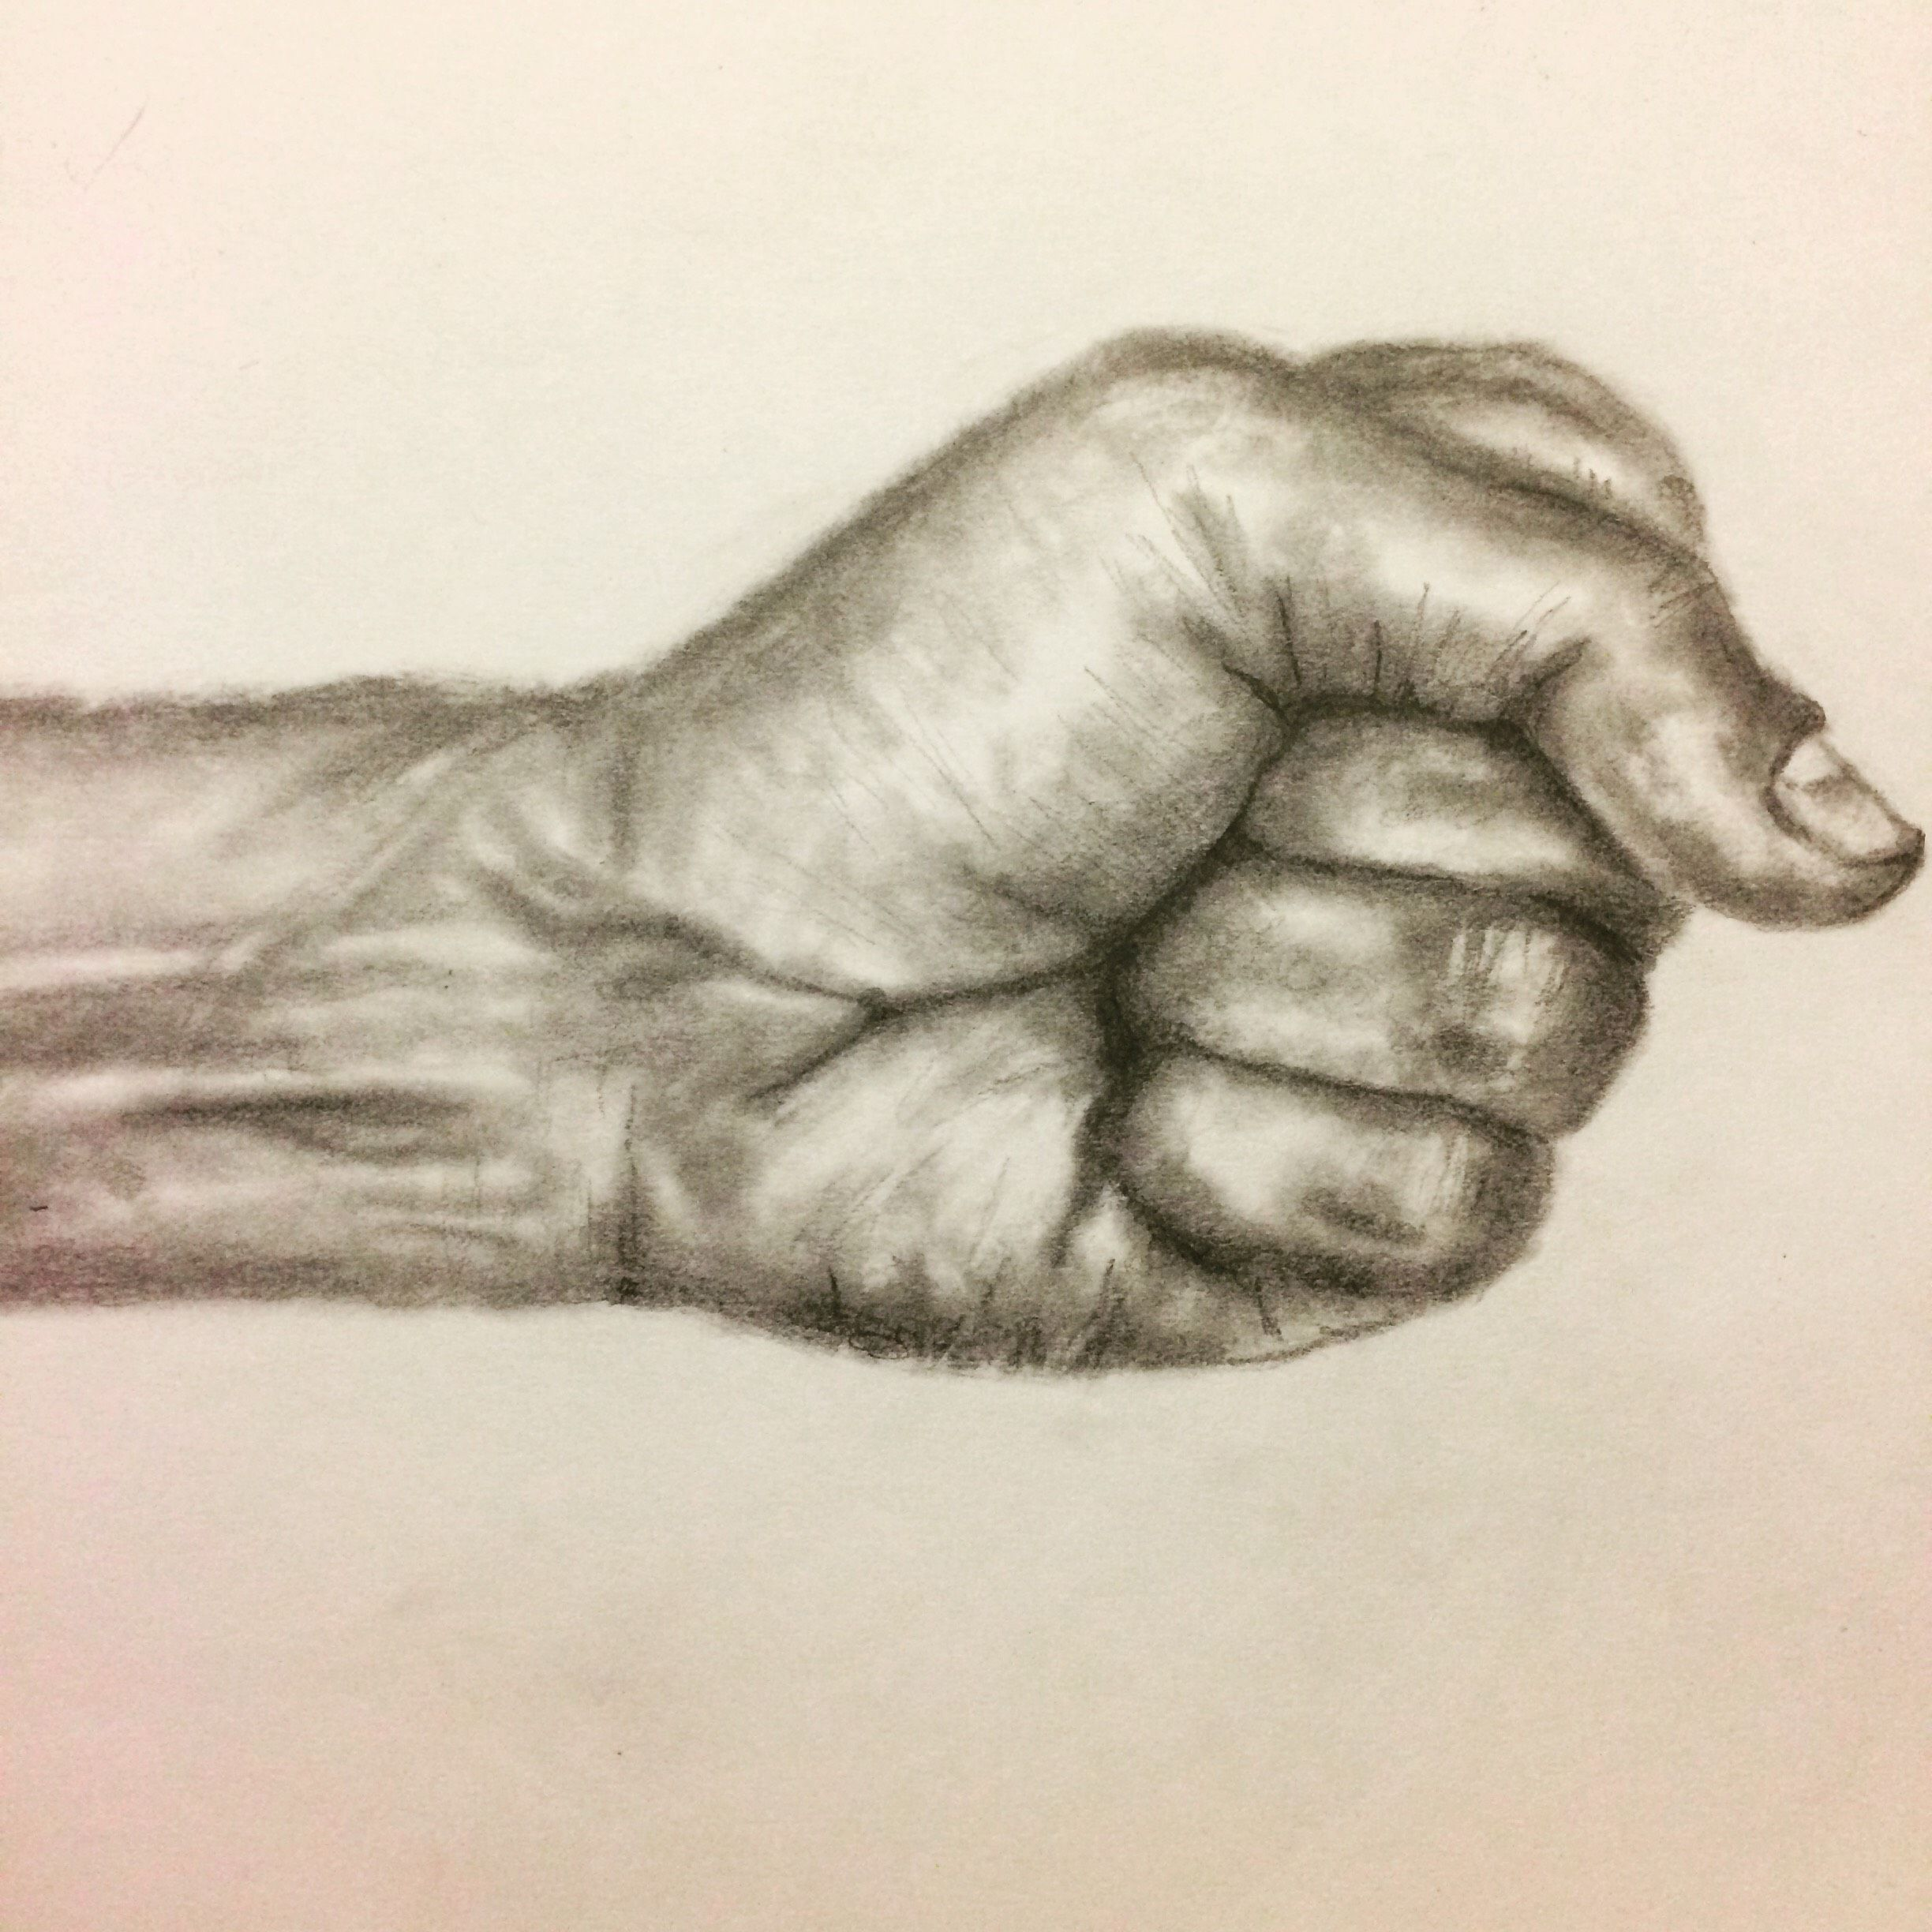 Pencil drawing of a fist studying hands